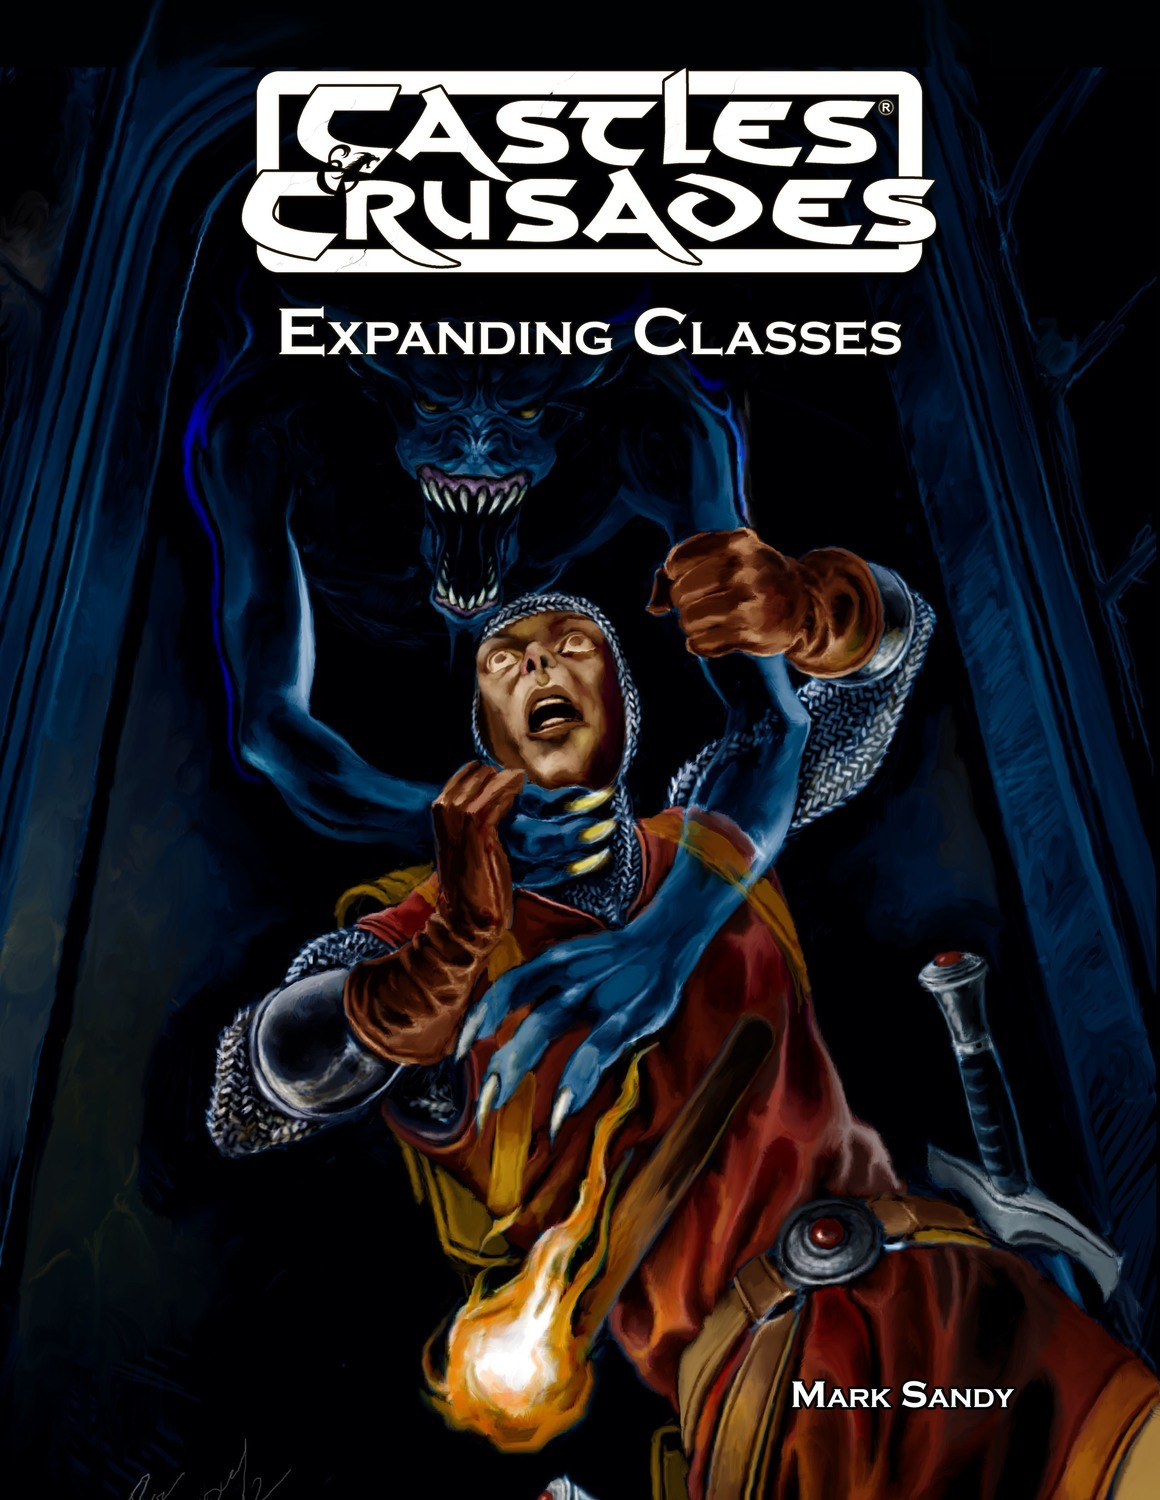 Castles & Crusades Expanding Classes Digital